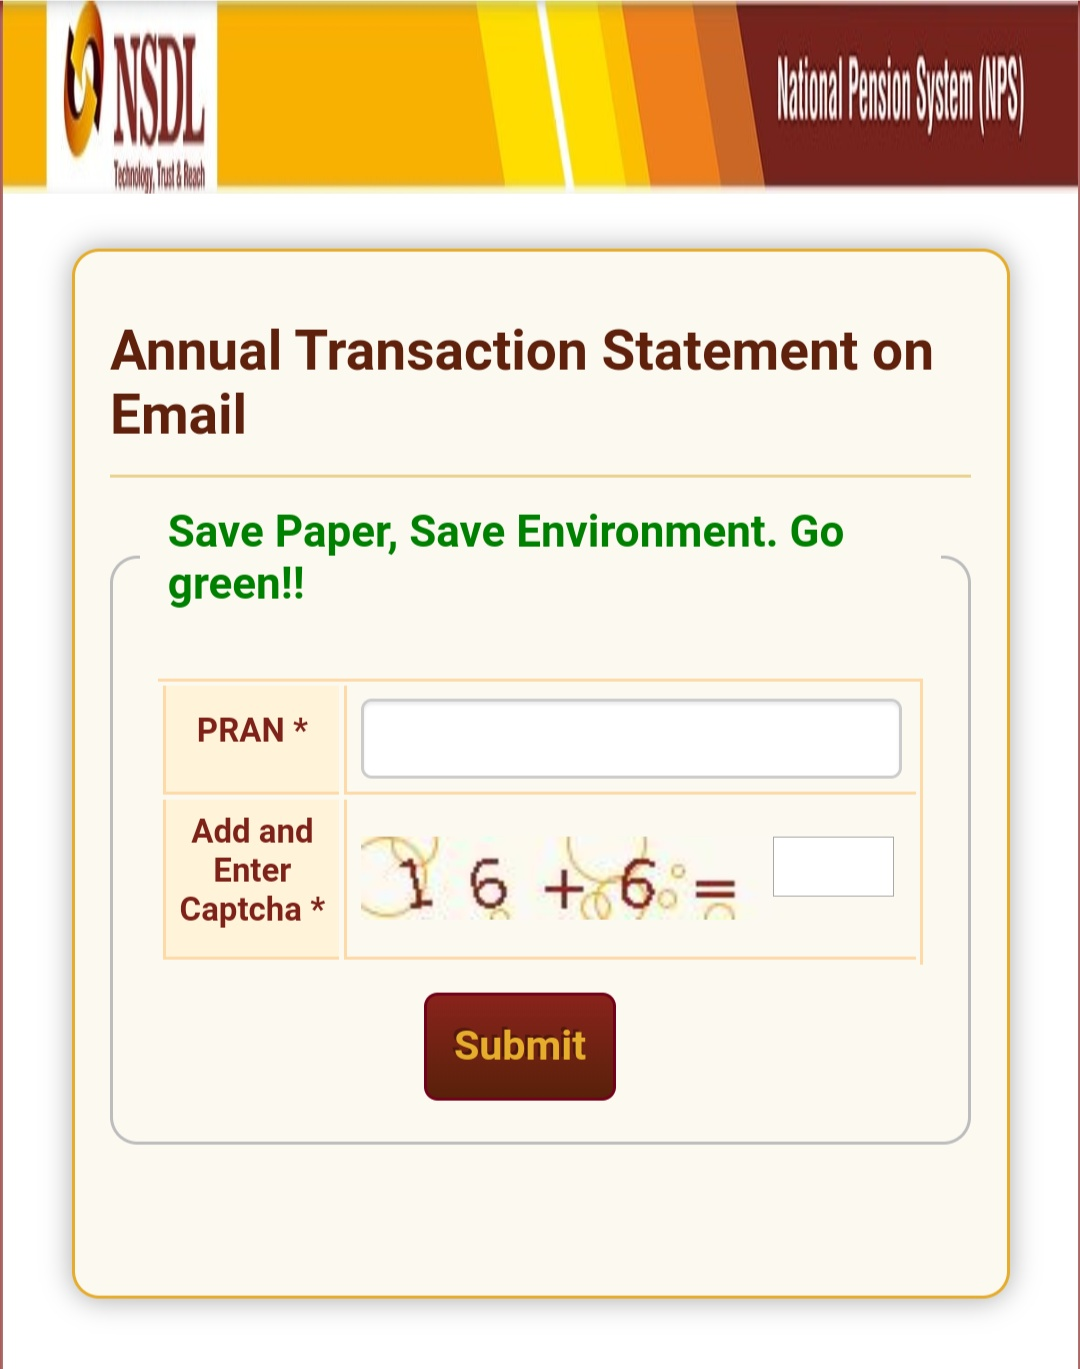 To view the Annual Payment / Statement of NPS 2020-21 & to get in e-mail